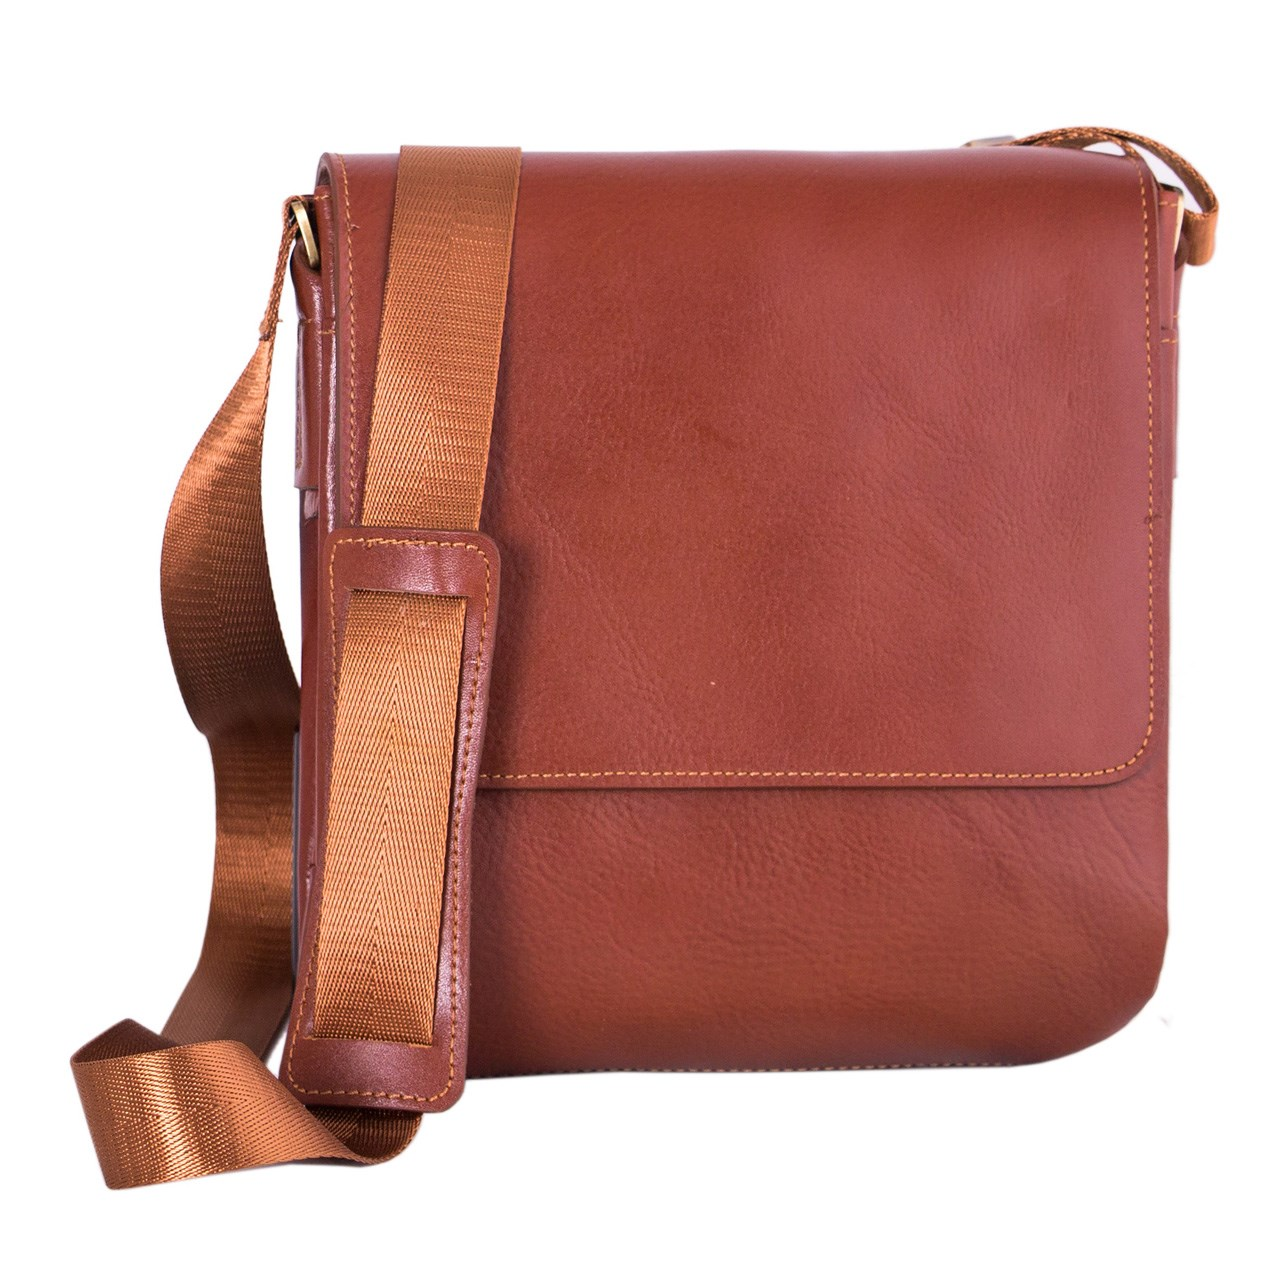 ADINCHARM natural leather satchel, Model DG39